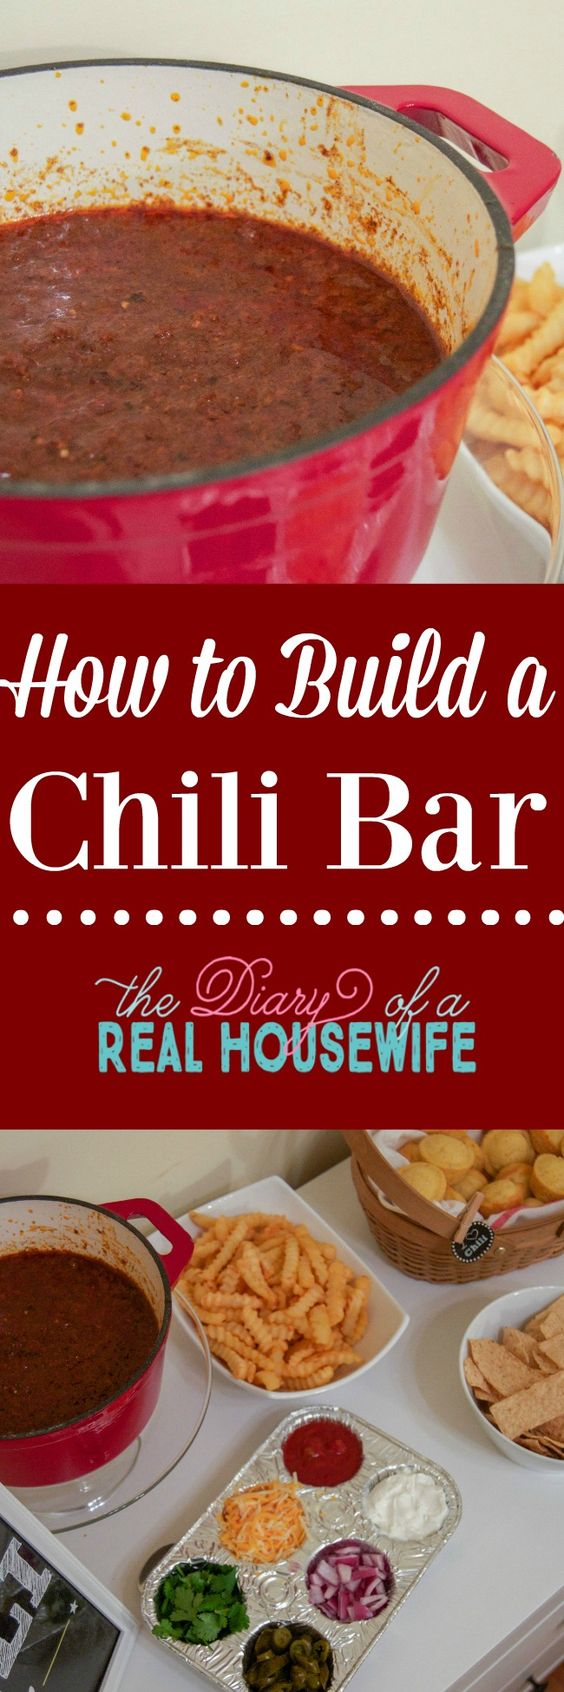 How to build an awesome chili bar! With FREE PRINTABLE to make your chili bar look awesome.